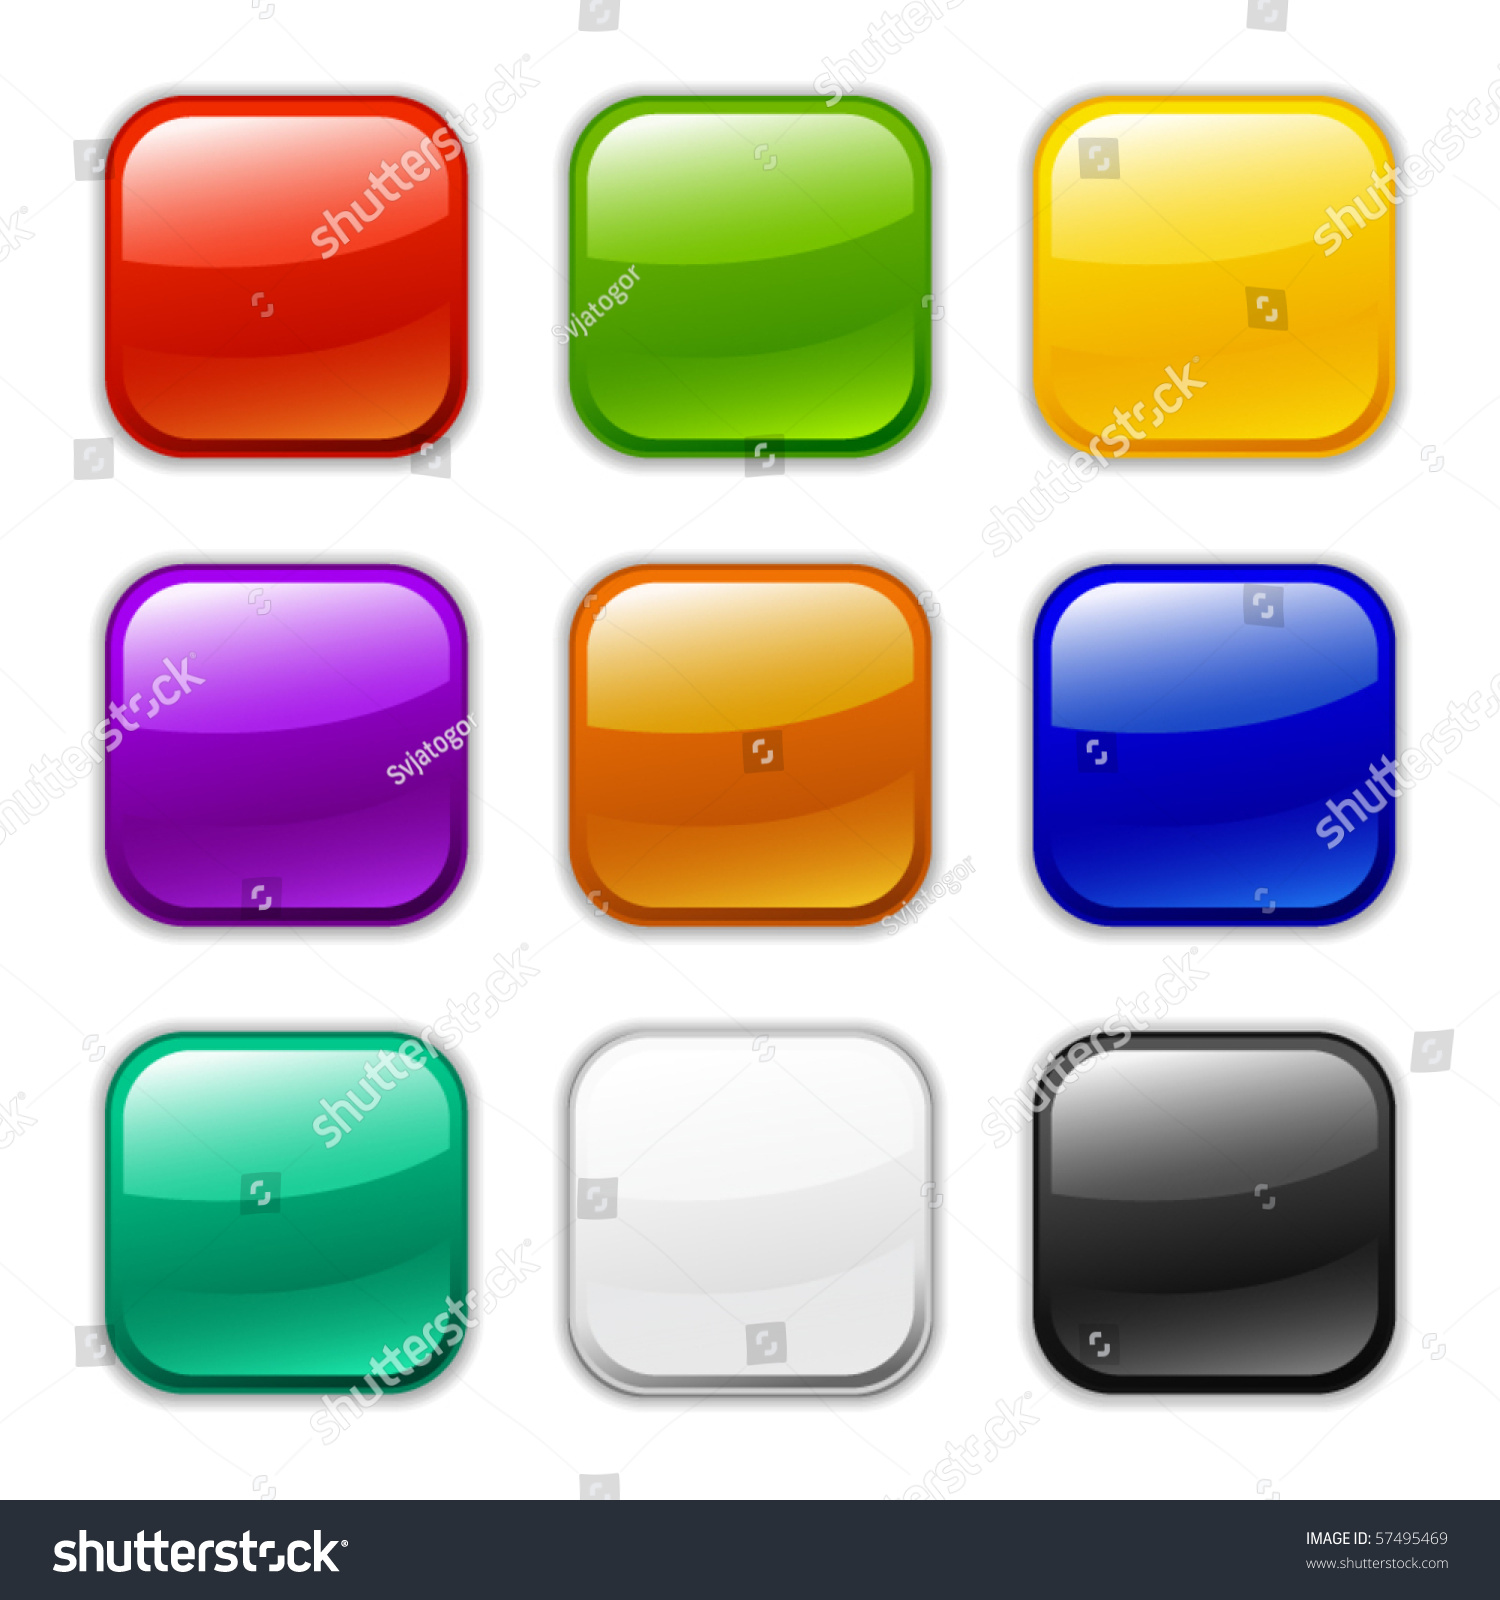 Vector Glossy Button Icon Samples Stock Vector 57495469 - Shutterstock